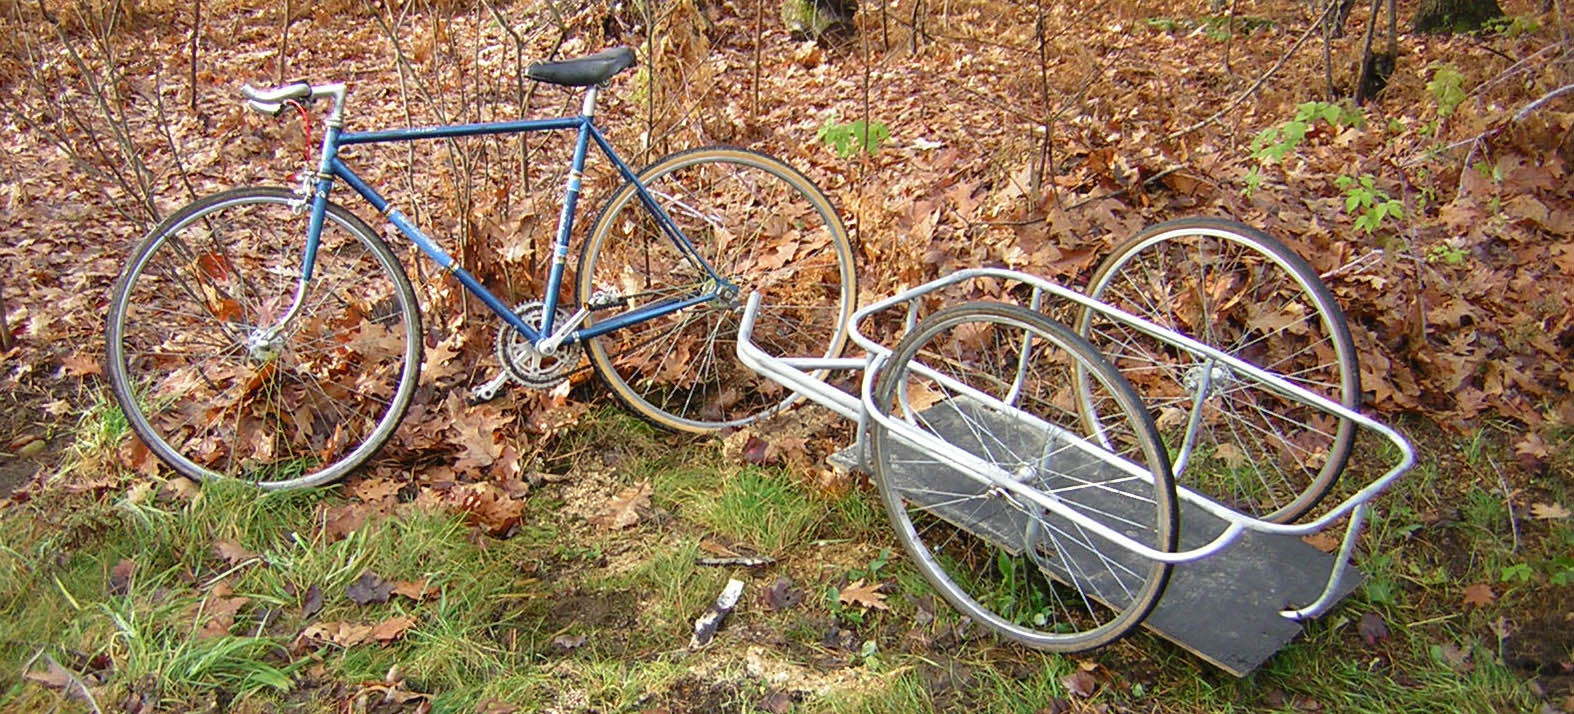 Bicycle Cargo Trailer--200 Lb Capacity, $30 for Parts: 16 Steps ...